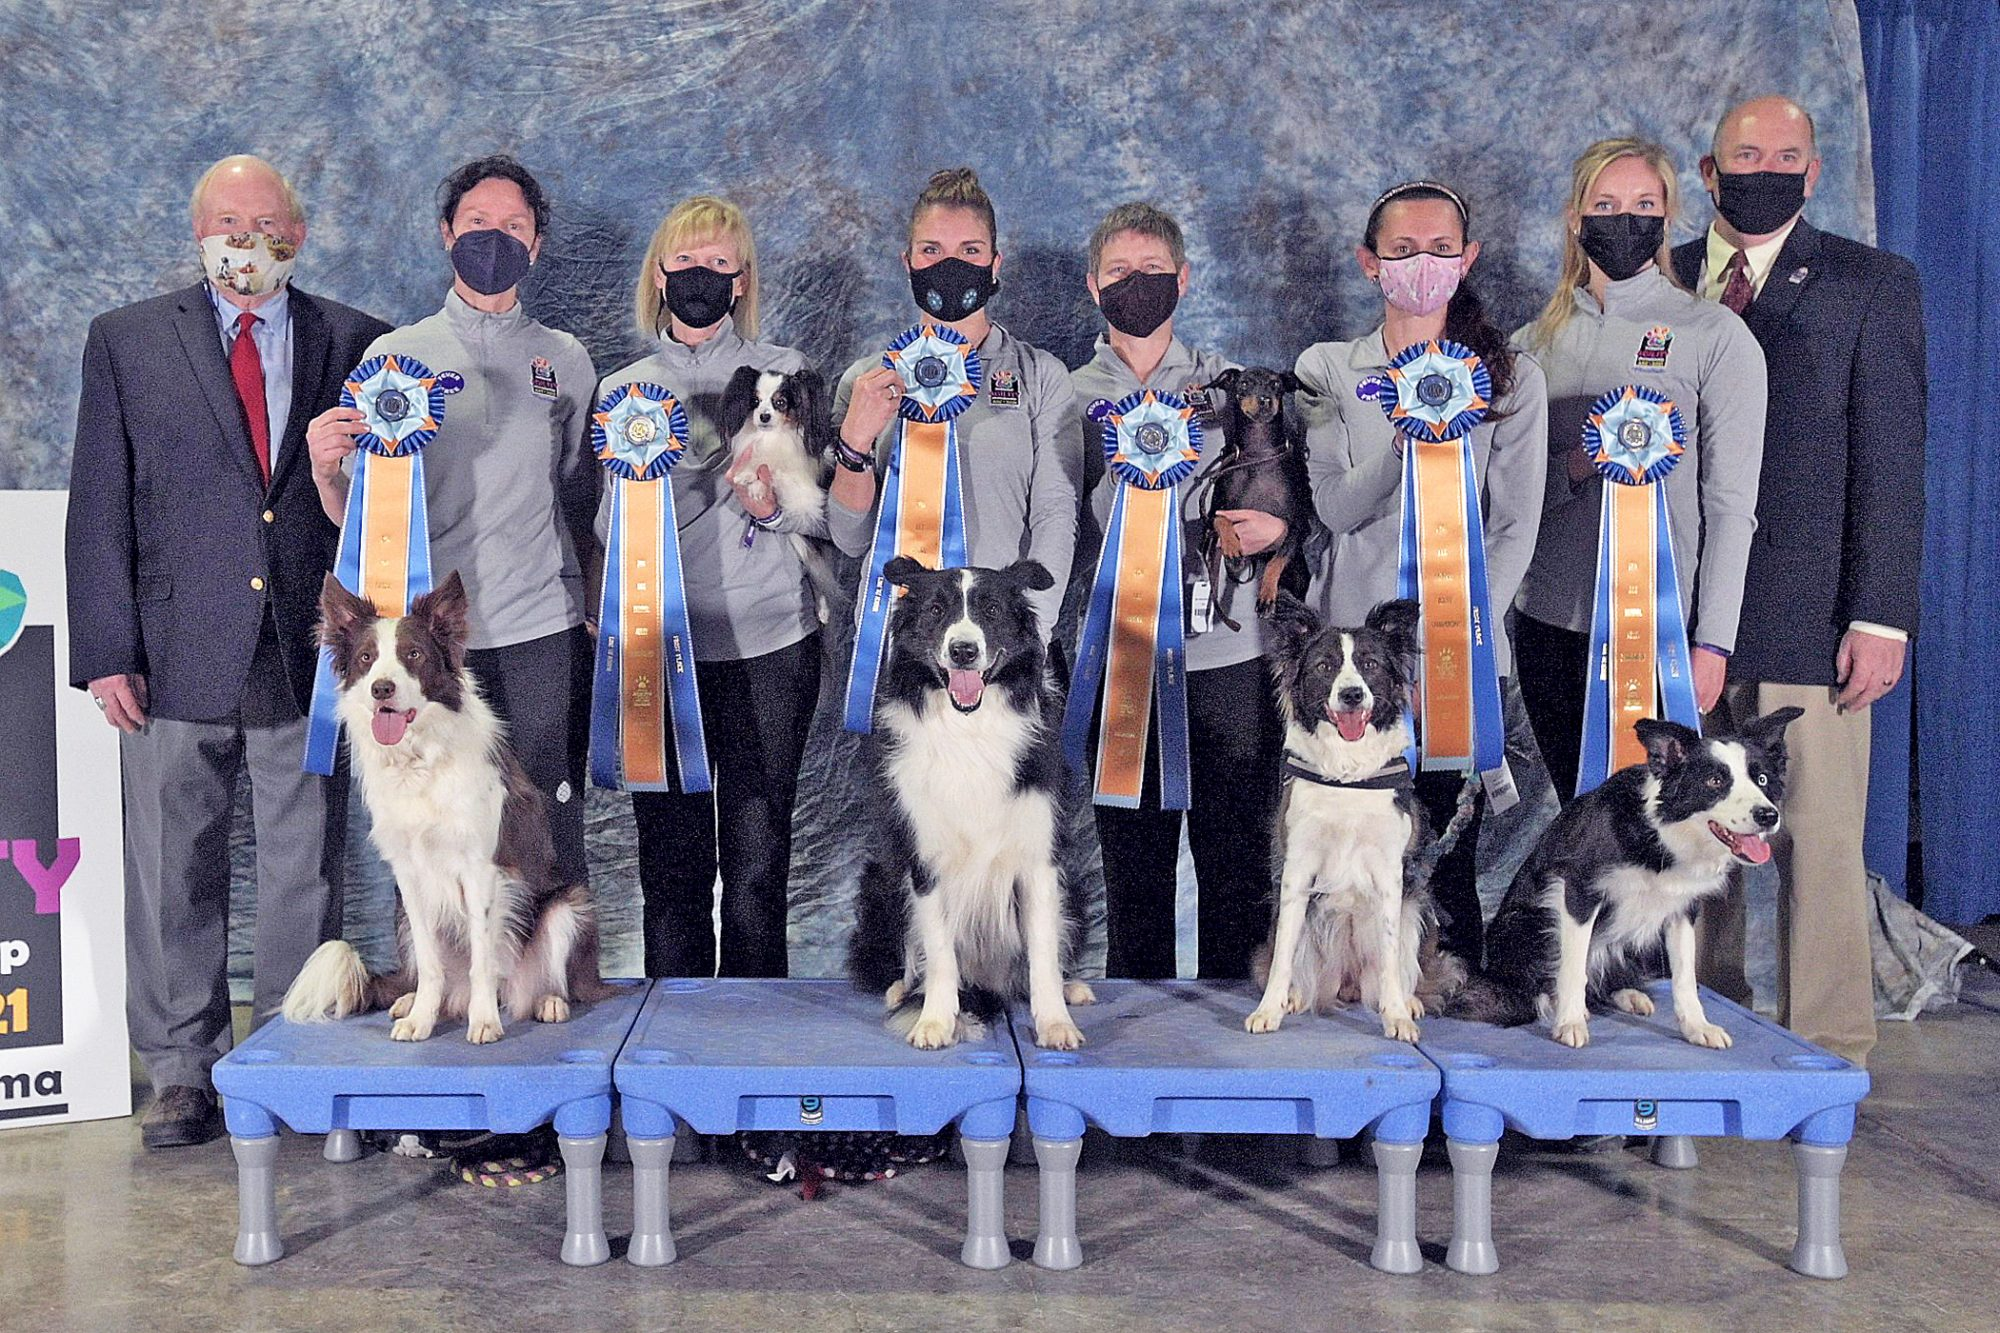 Winners of the AKC 2021 National Agility Championship